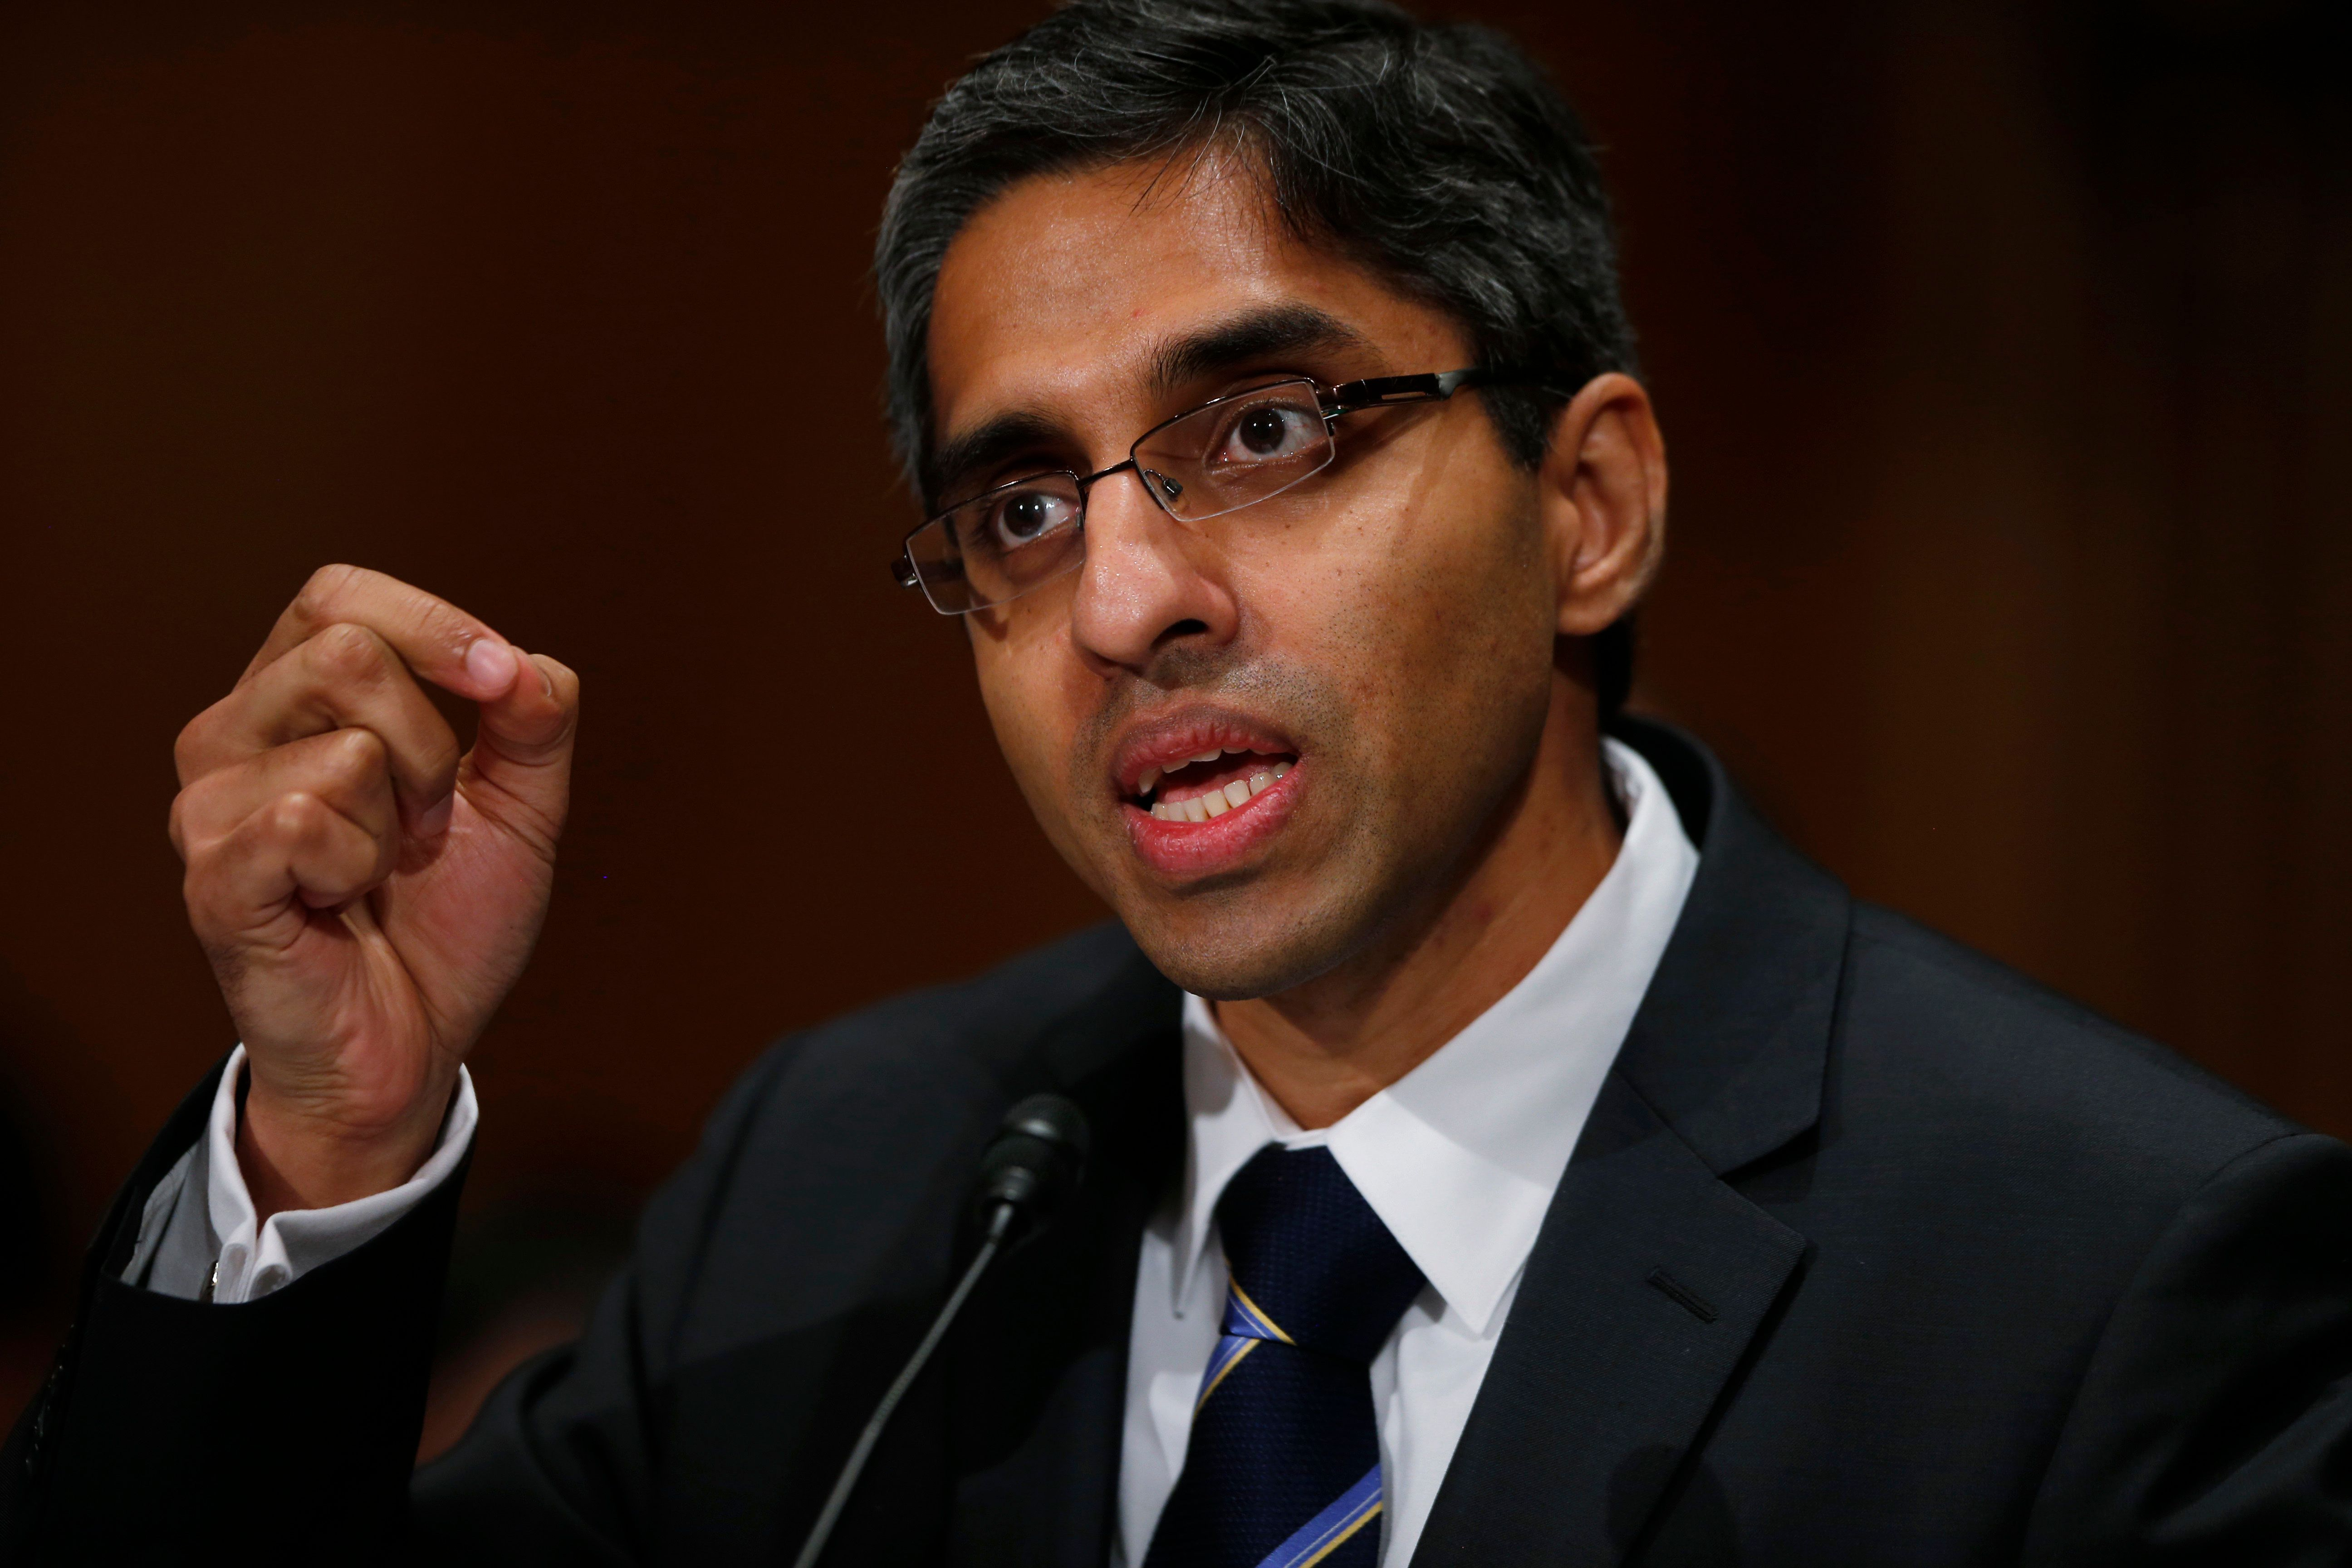 Surgeon General Dr. Vivek Murthy hopes his new report on drugs and alcohol will call attention to the public health crisis of